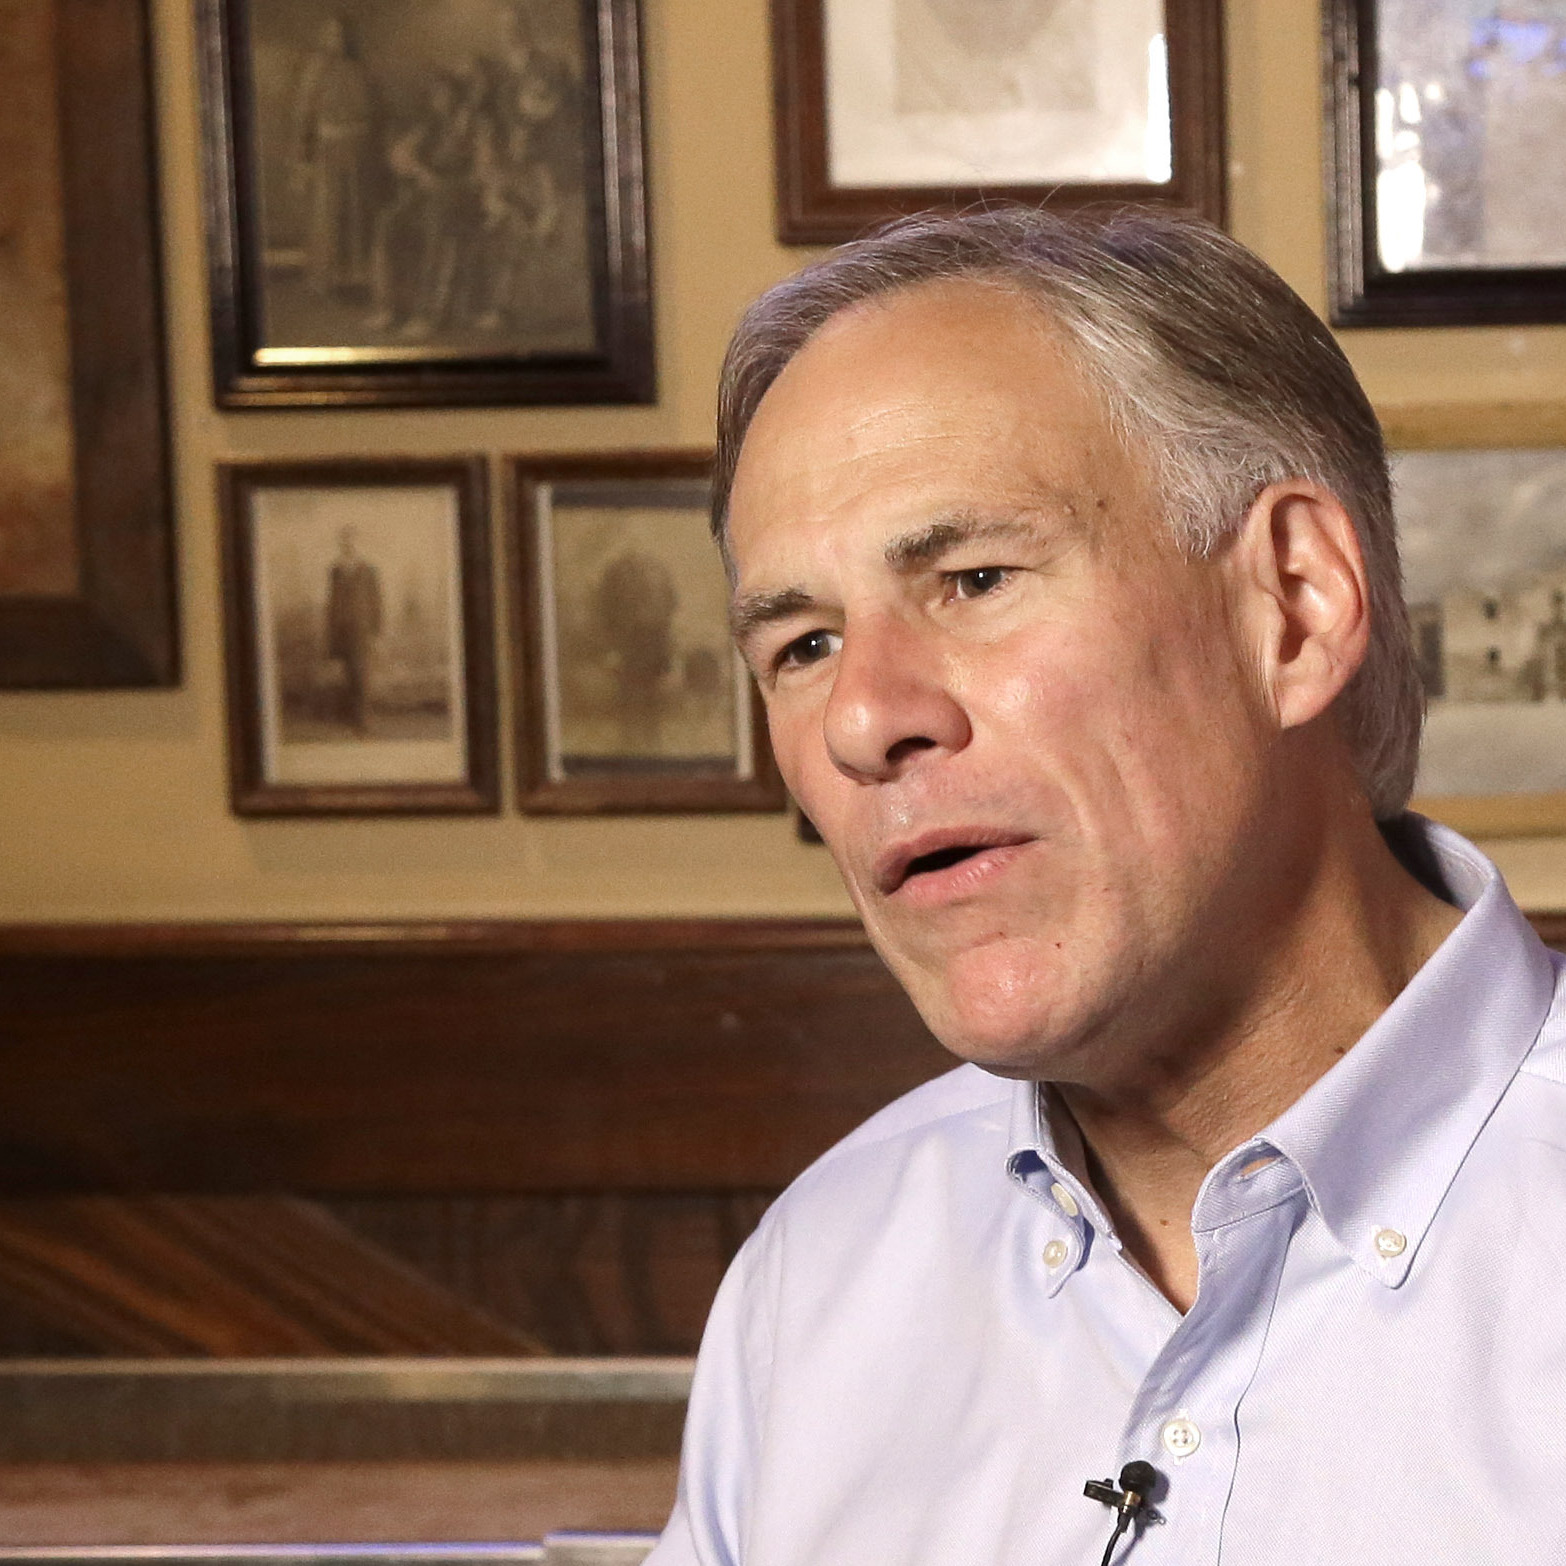 Texas Attorney General Greg Abbott, a Republican candidate for governor, gives an interview in Houston in July.